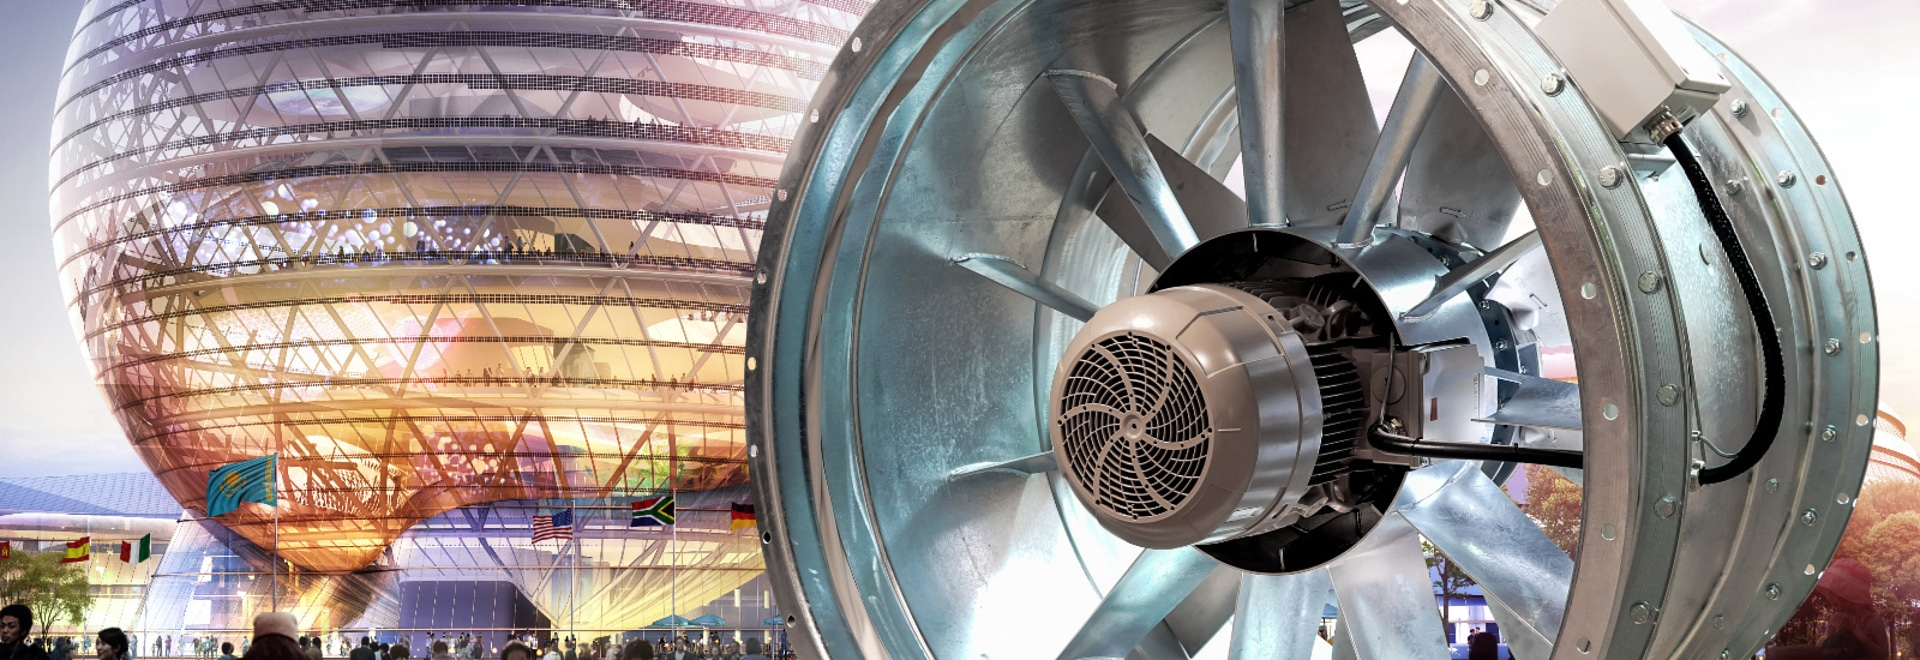 EXPO 2017: 'Nur Alem' with high-performance tube axial fan